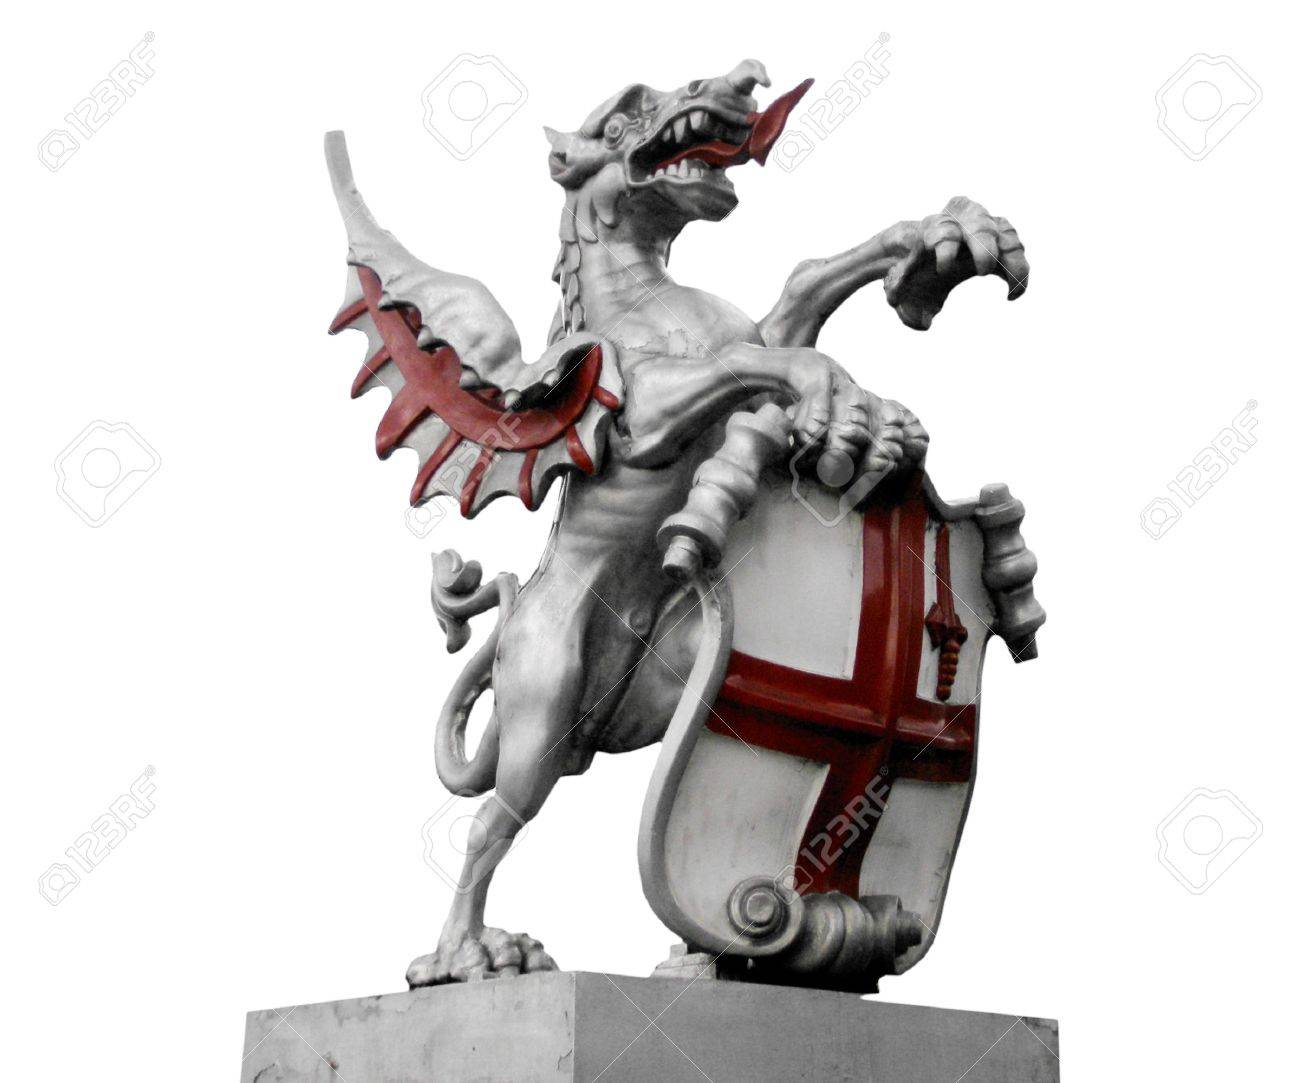 St george with the dragon symbol of england and london stock st george with the dragon symbol of england and london stock photo 7279179 biocorpaavc Image collections